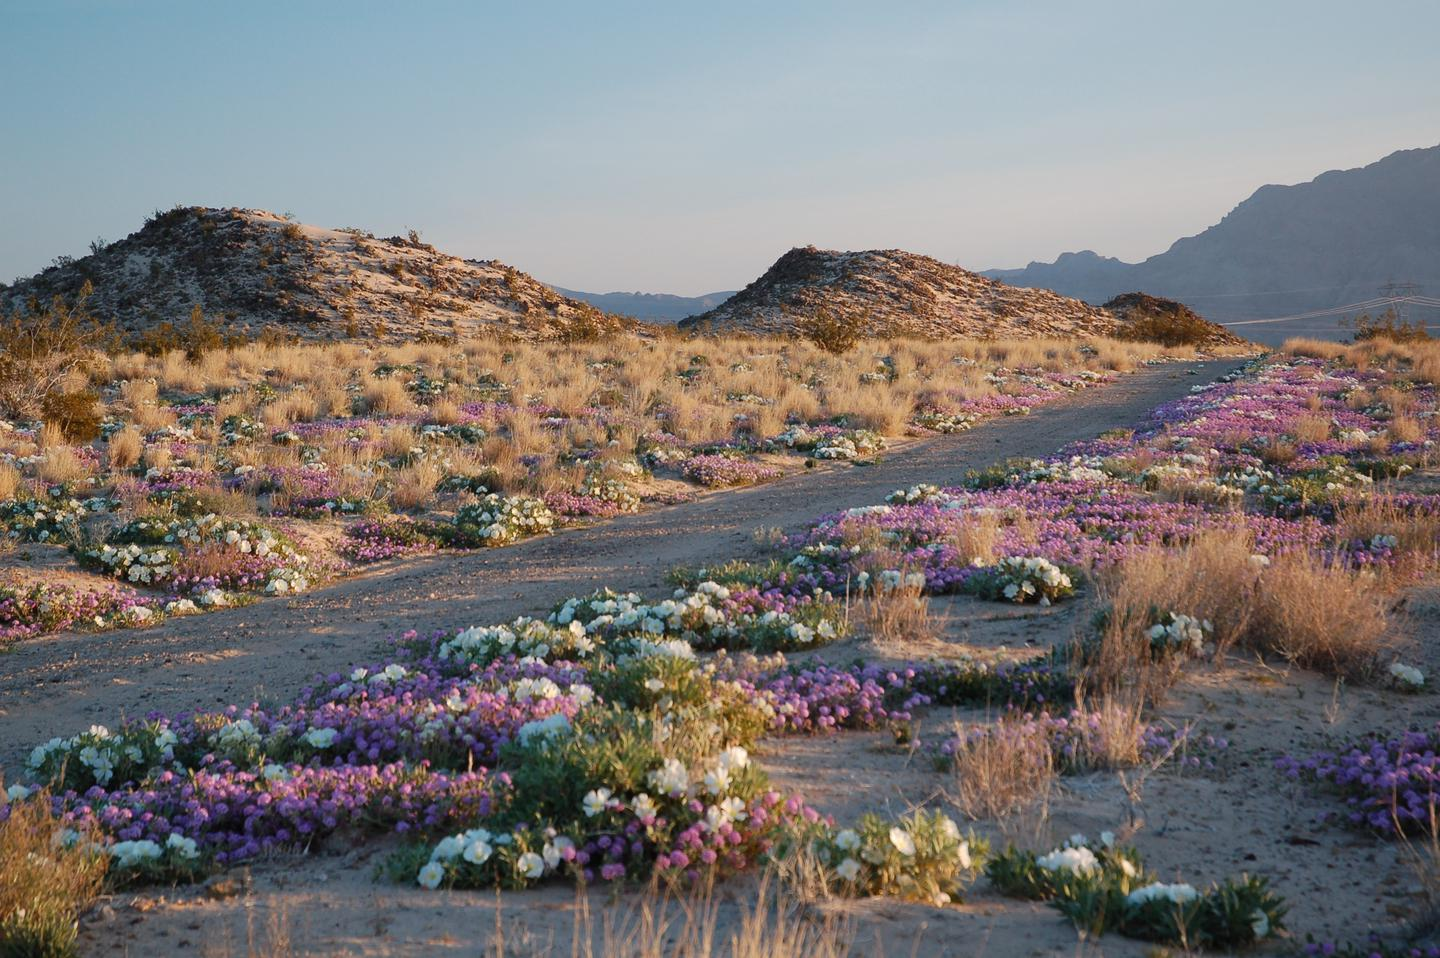 A desert road surrounded by spring wildflowersMany people visit Mojave in the spring season to view stunning wildflower displays.